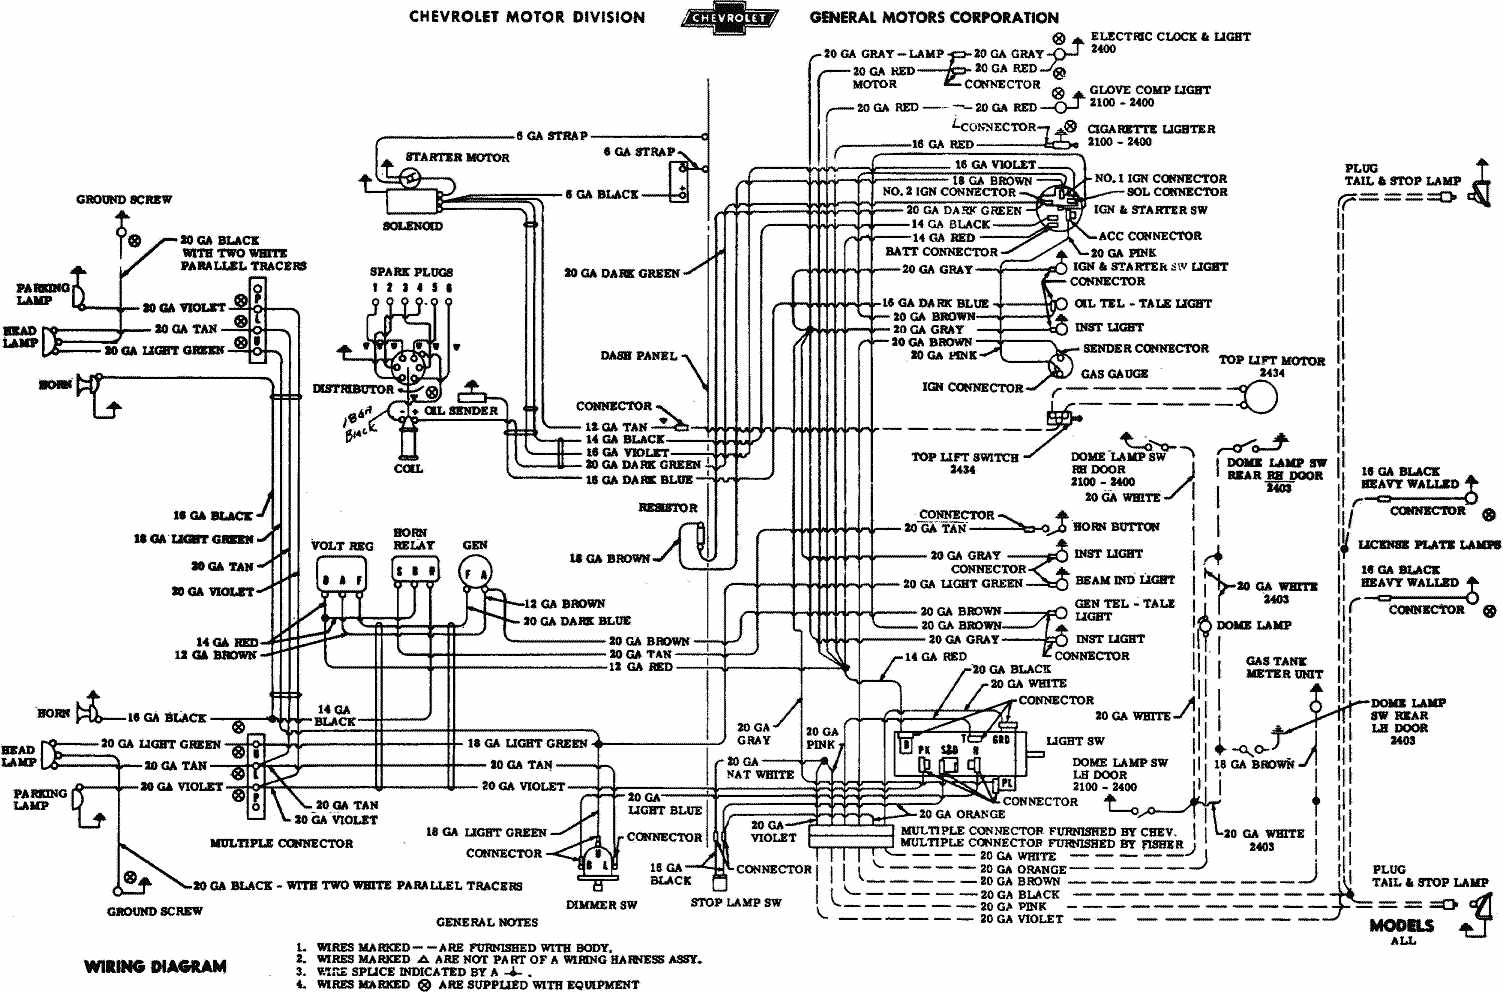 55 Chevy Wiring Harness - Wiring Diagram Schematic Name on wiring harness diagram, 1940 buick wiring diagram, 2014 dodge 2500 wiring diagram, 1961 thunderbird wiring diagram, 1955 ford electrical system, 1955 ford exhaust system, 1957 wiring diagram, 1955 ford wheels, 1941 oldsmobile wiring diagram, 1950 buick wiring diagram, 1949 cadillac wiring diagram, 1955 ford accessories, 1953 dodge wiring diagram, 1964 mustang wiring diagram, 2012 dodge avenger wiring diagram, 1955 ford chassis, 1954 dodge wiring diagram, 1956 thunderbird wiring diagram, tractor ignition switch wiring diagram, 1953 buick wiring diagram,